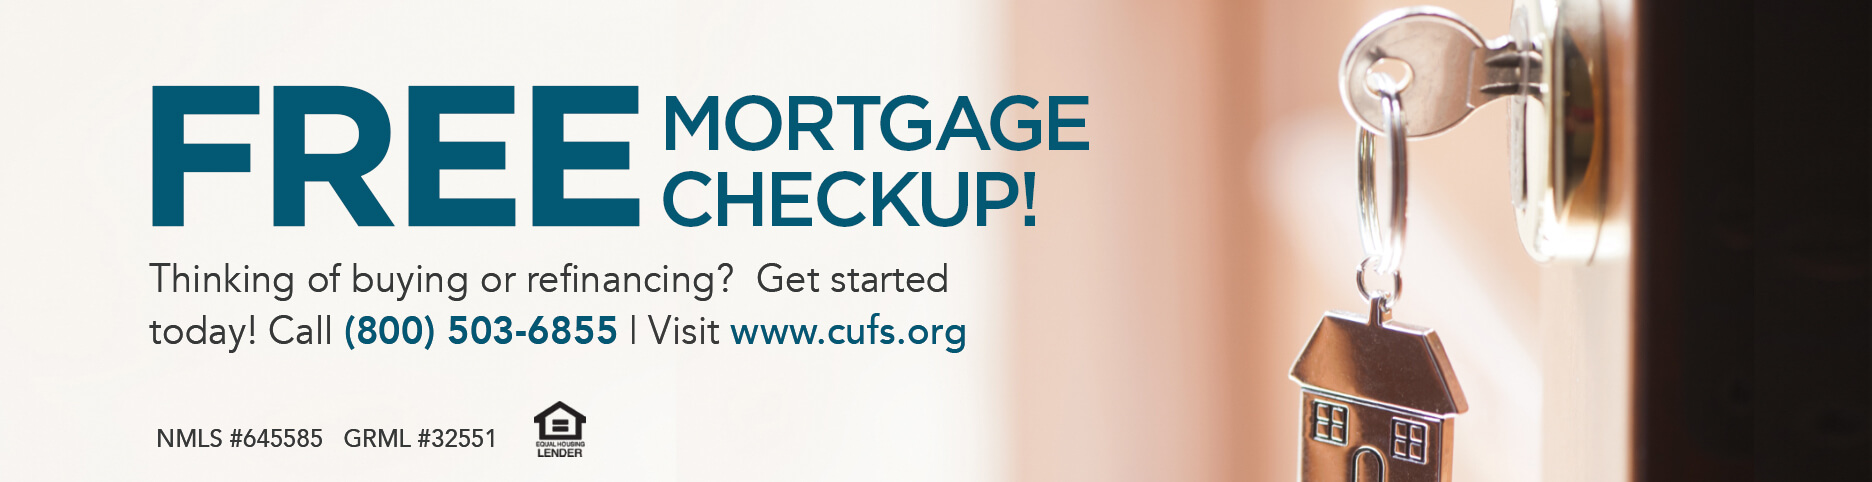 Free Mortgage Checkup Banner On The Grid Financial